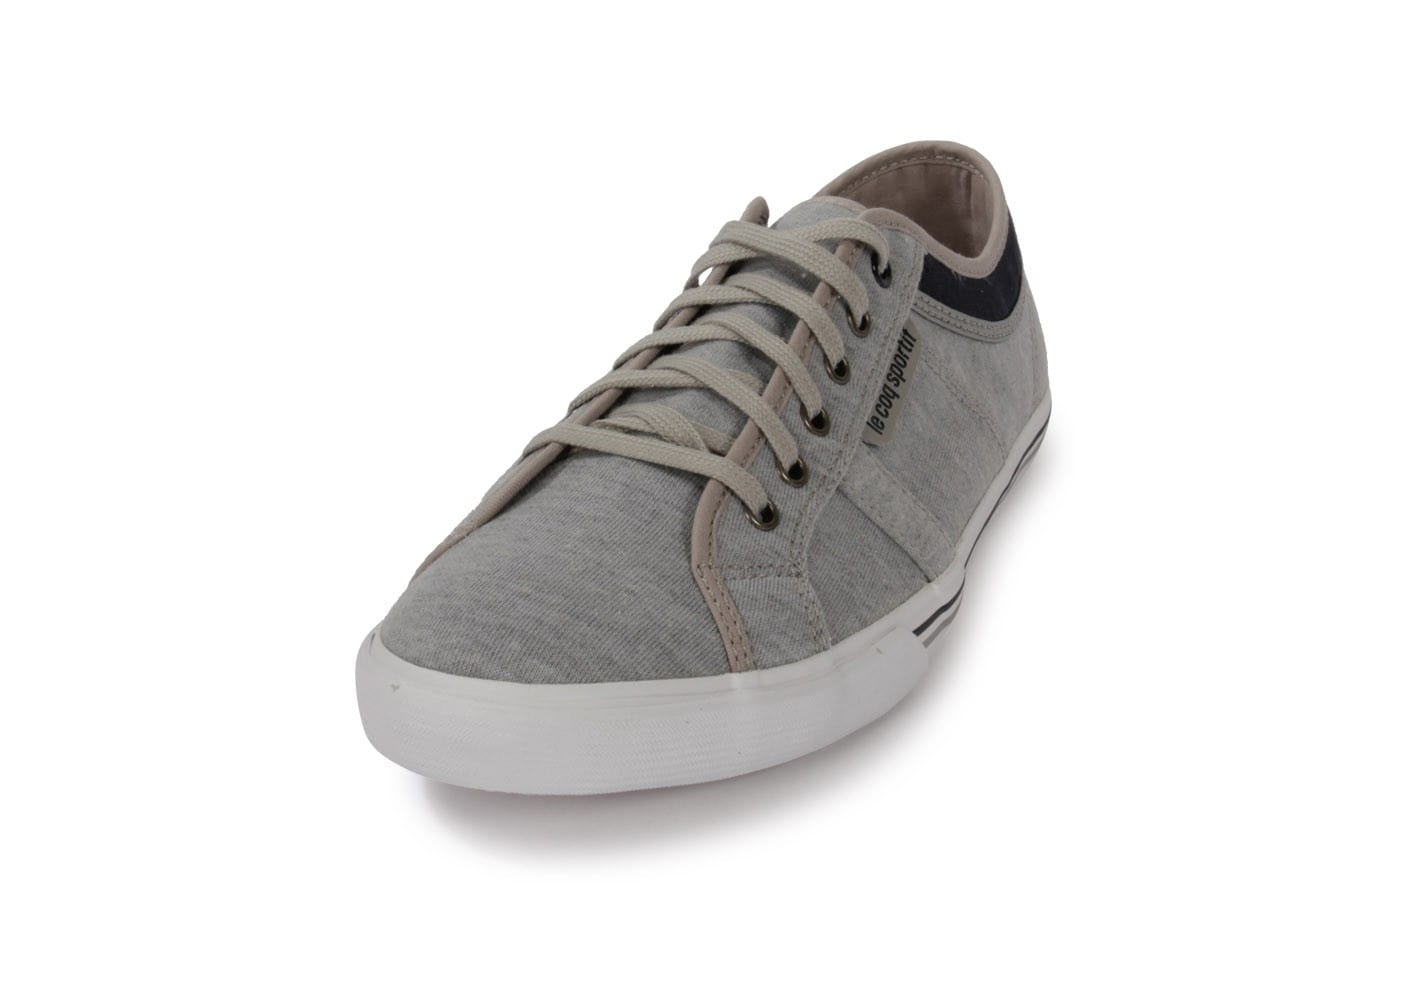 le coq sportif ferdinand jersey gris chaussures homme chausport. Black Bedroom Furniture Sets. Home Design Ideas